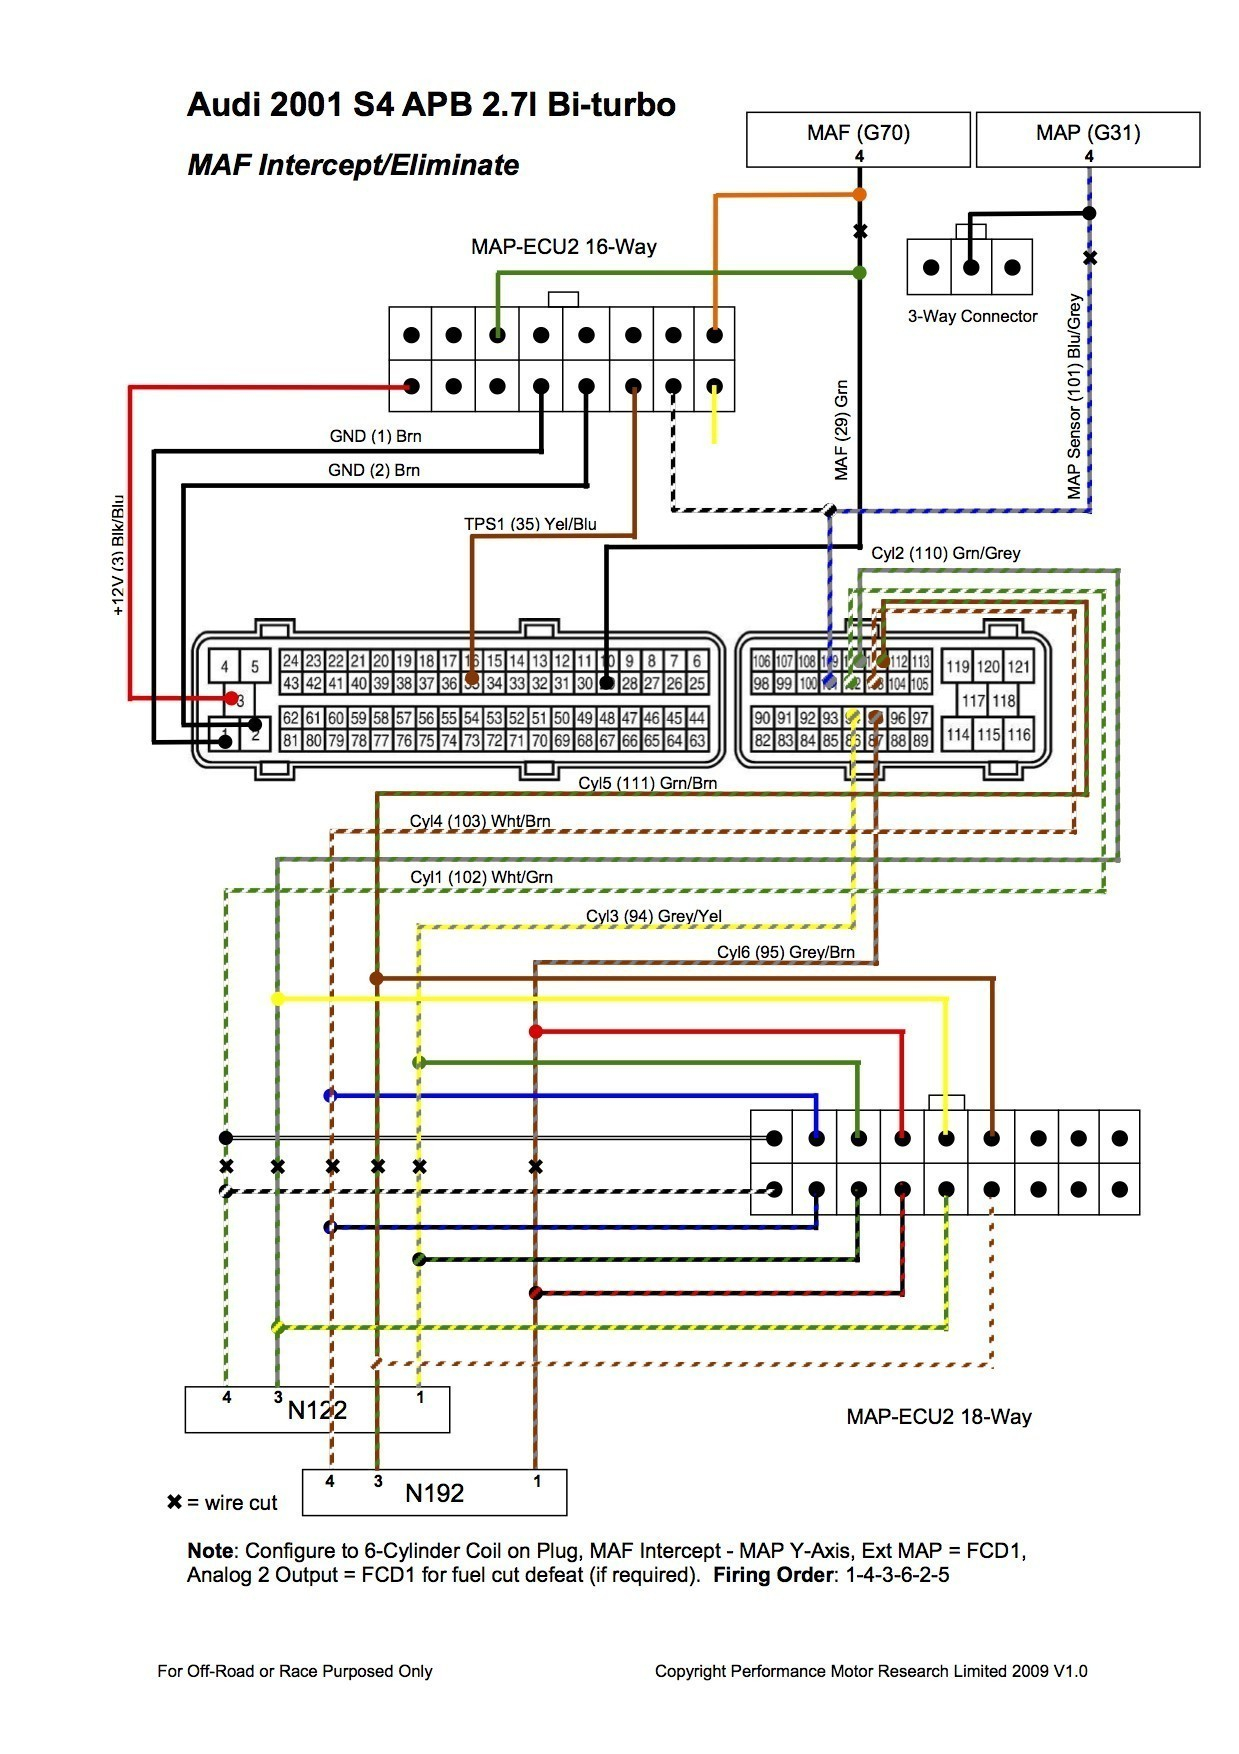 1997 Dodge Ram Stereo Wiring Diagram Data Fine 2007 1500 Harness On - 1999 Dodge Ram 1500 Radio Wiring Diagram